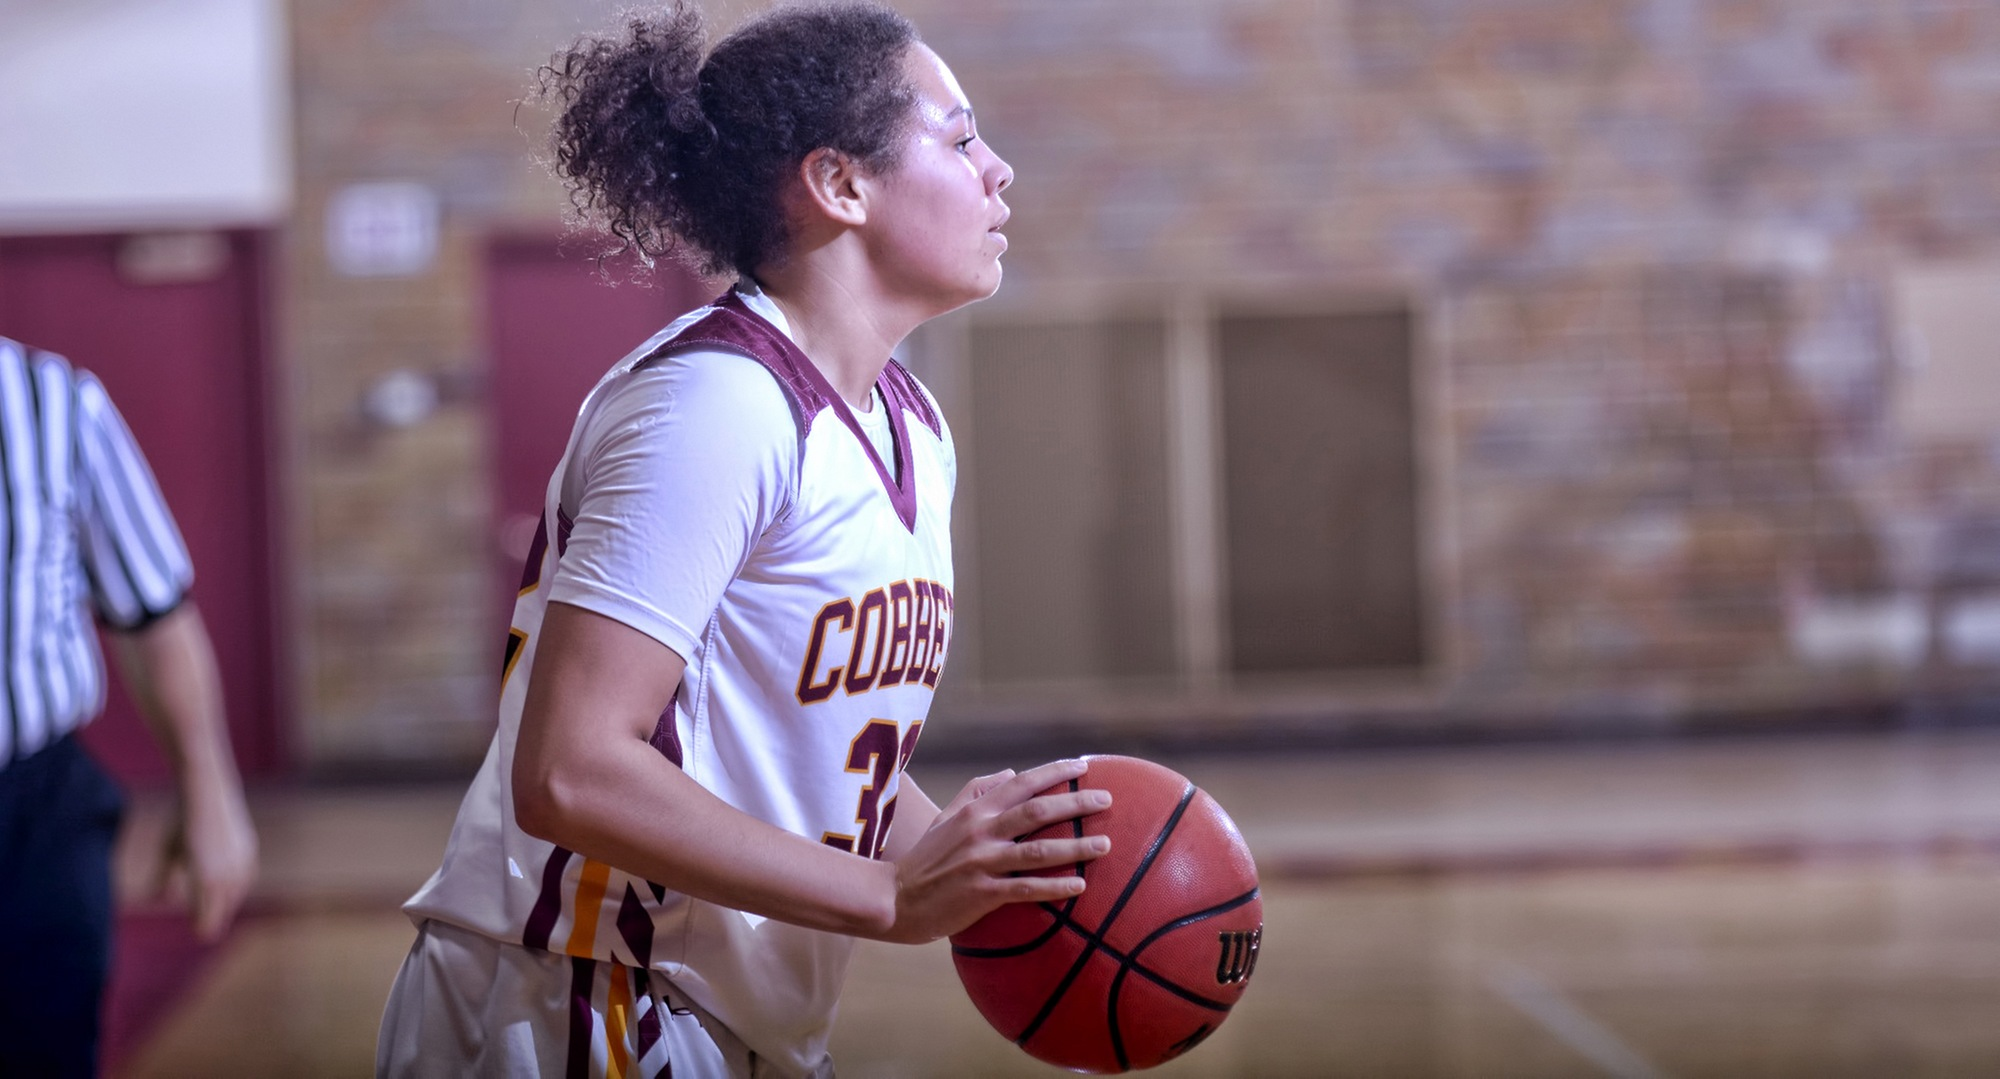 Sophomore Aleya Parker looks to make an entry pass during the second half of the Cobbers' win against Macalester. She finished with a career-high 16 points.